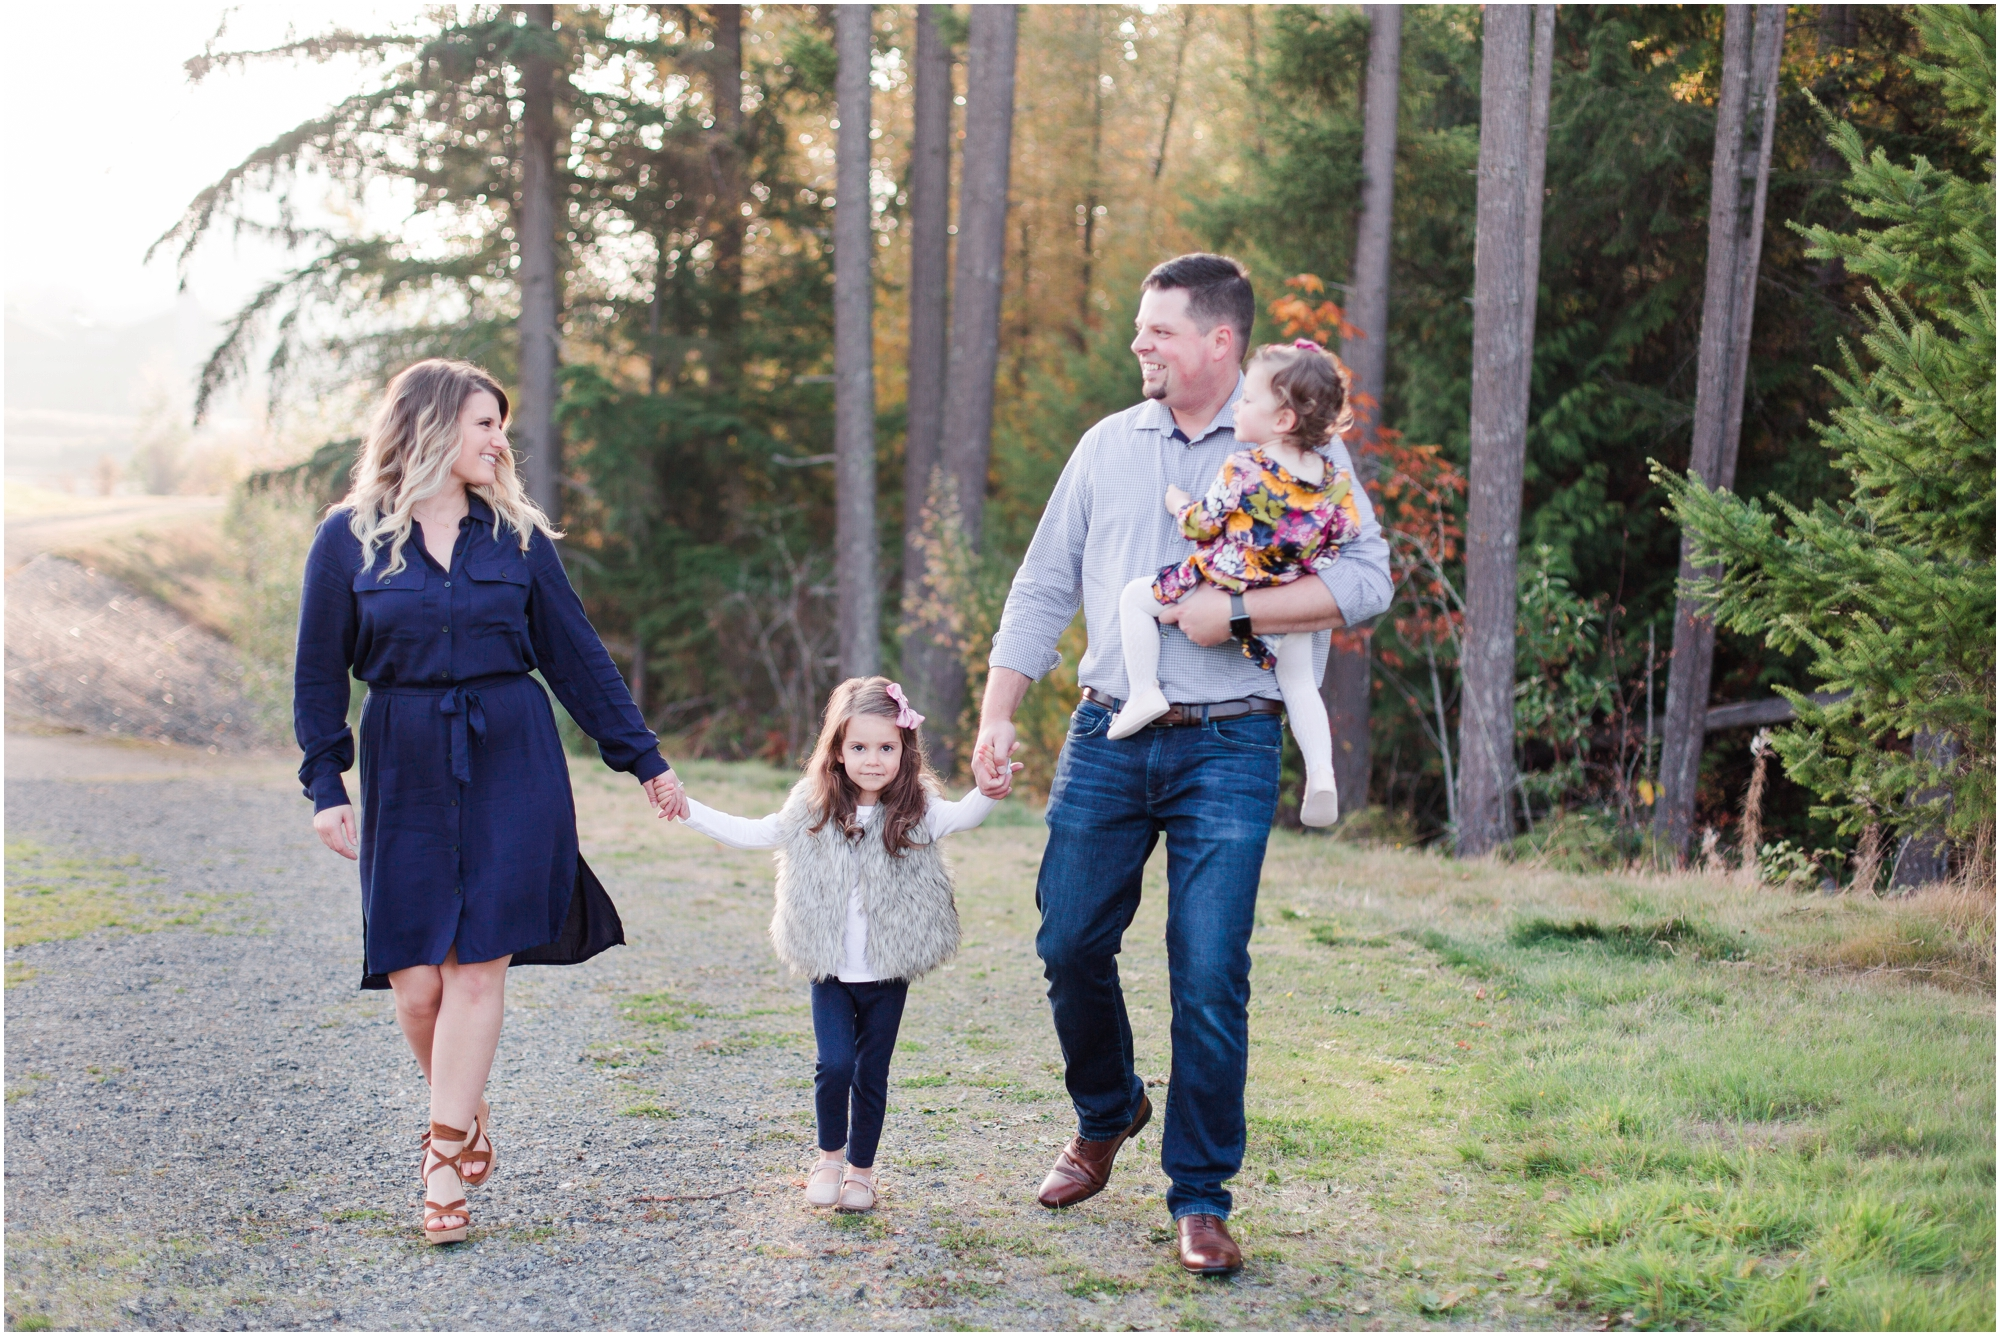 Fall family pictures by Briana Calderon Photography based in the Greater Seattle & Tacoma, WA_0925.jpg